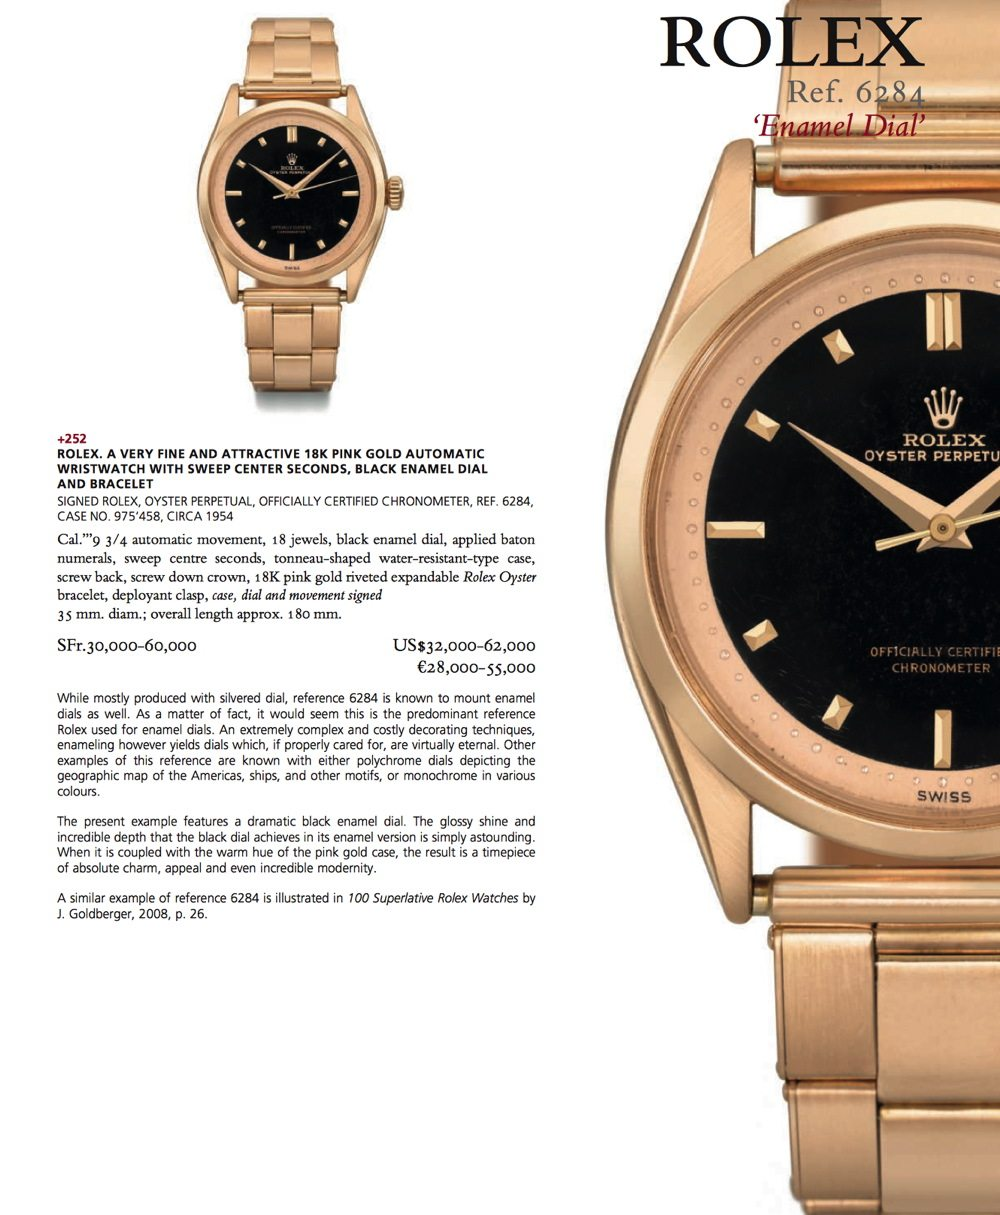 RPR_Rolex_geneva_auction_2015_97